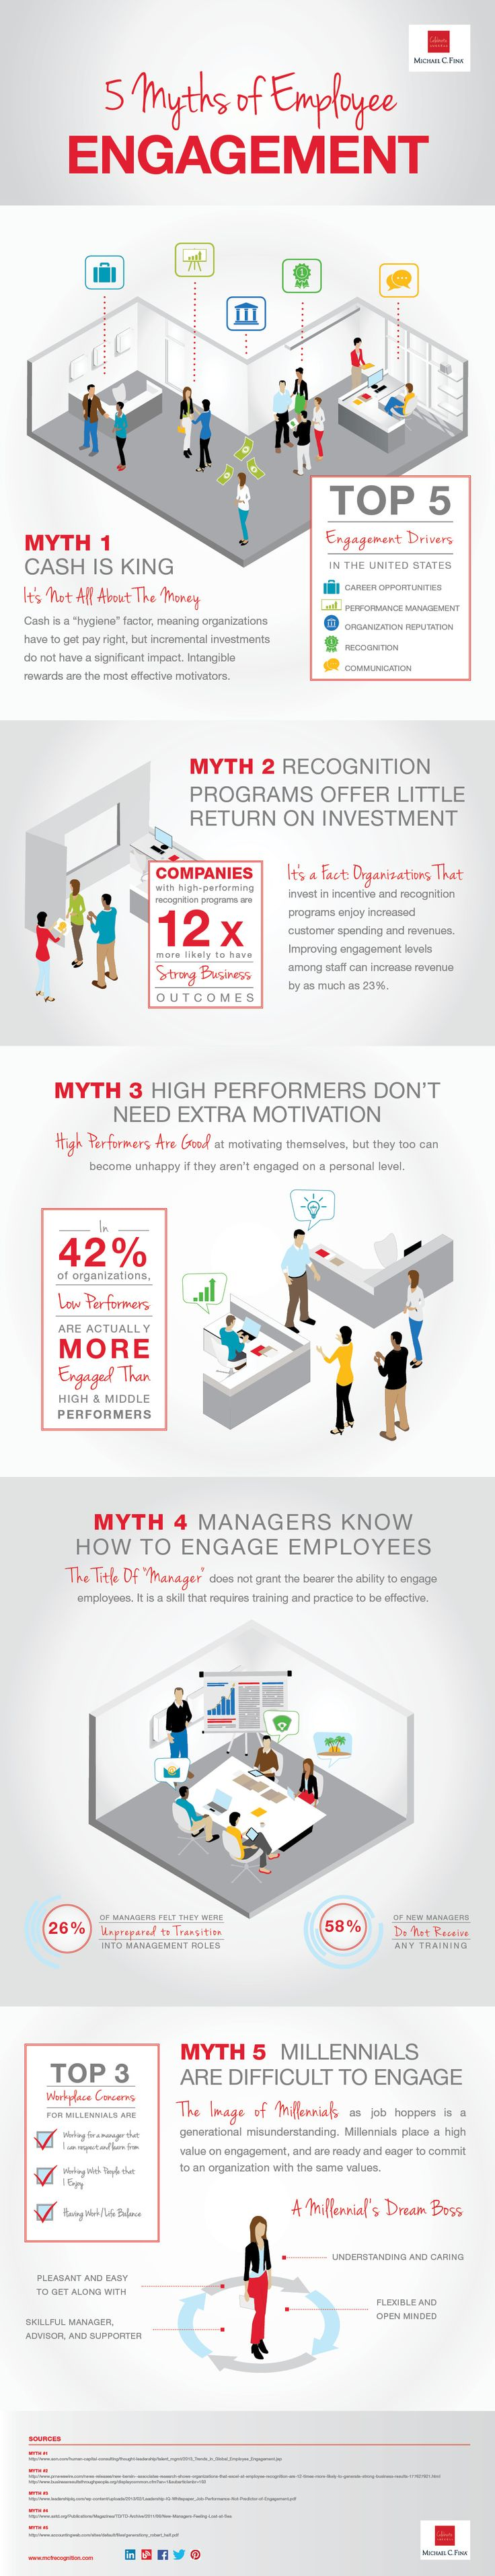 Top 5 myths of Employee Engagement #infographic (top one being that cash is king)